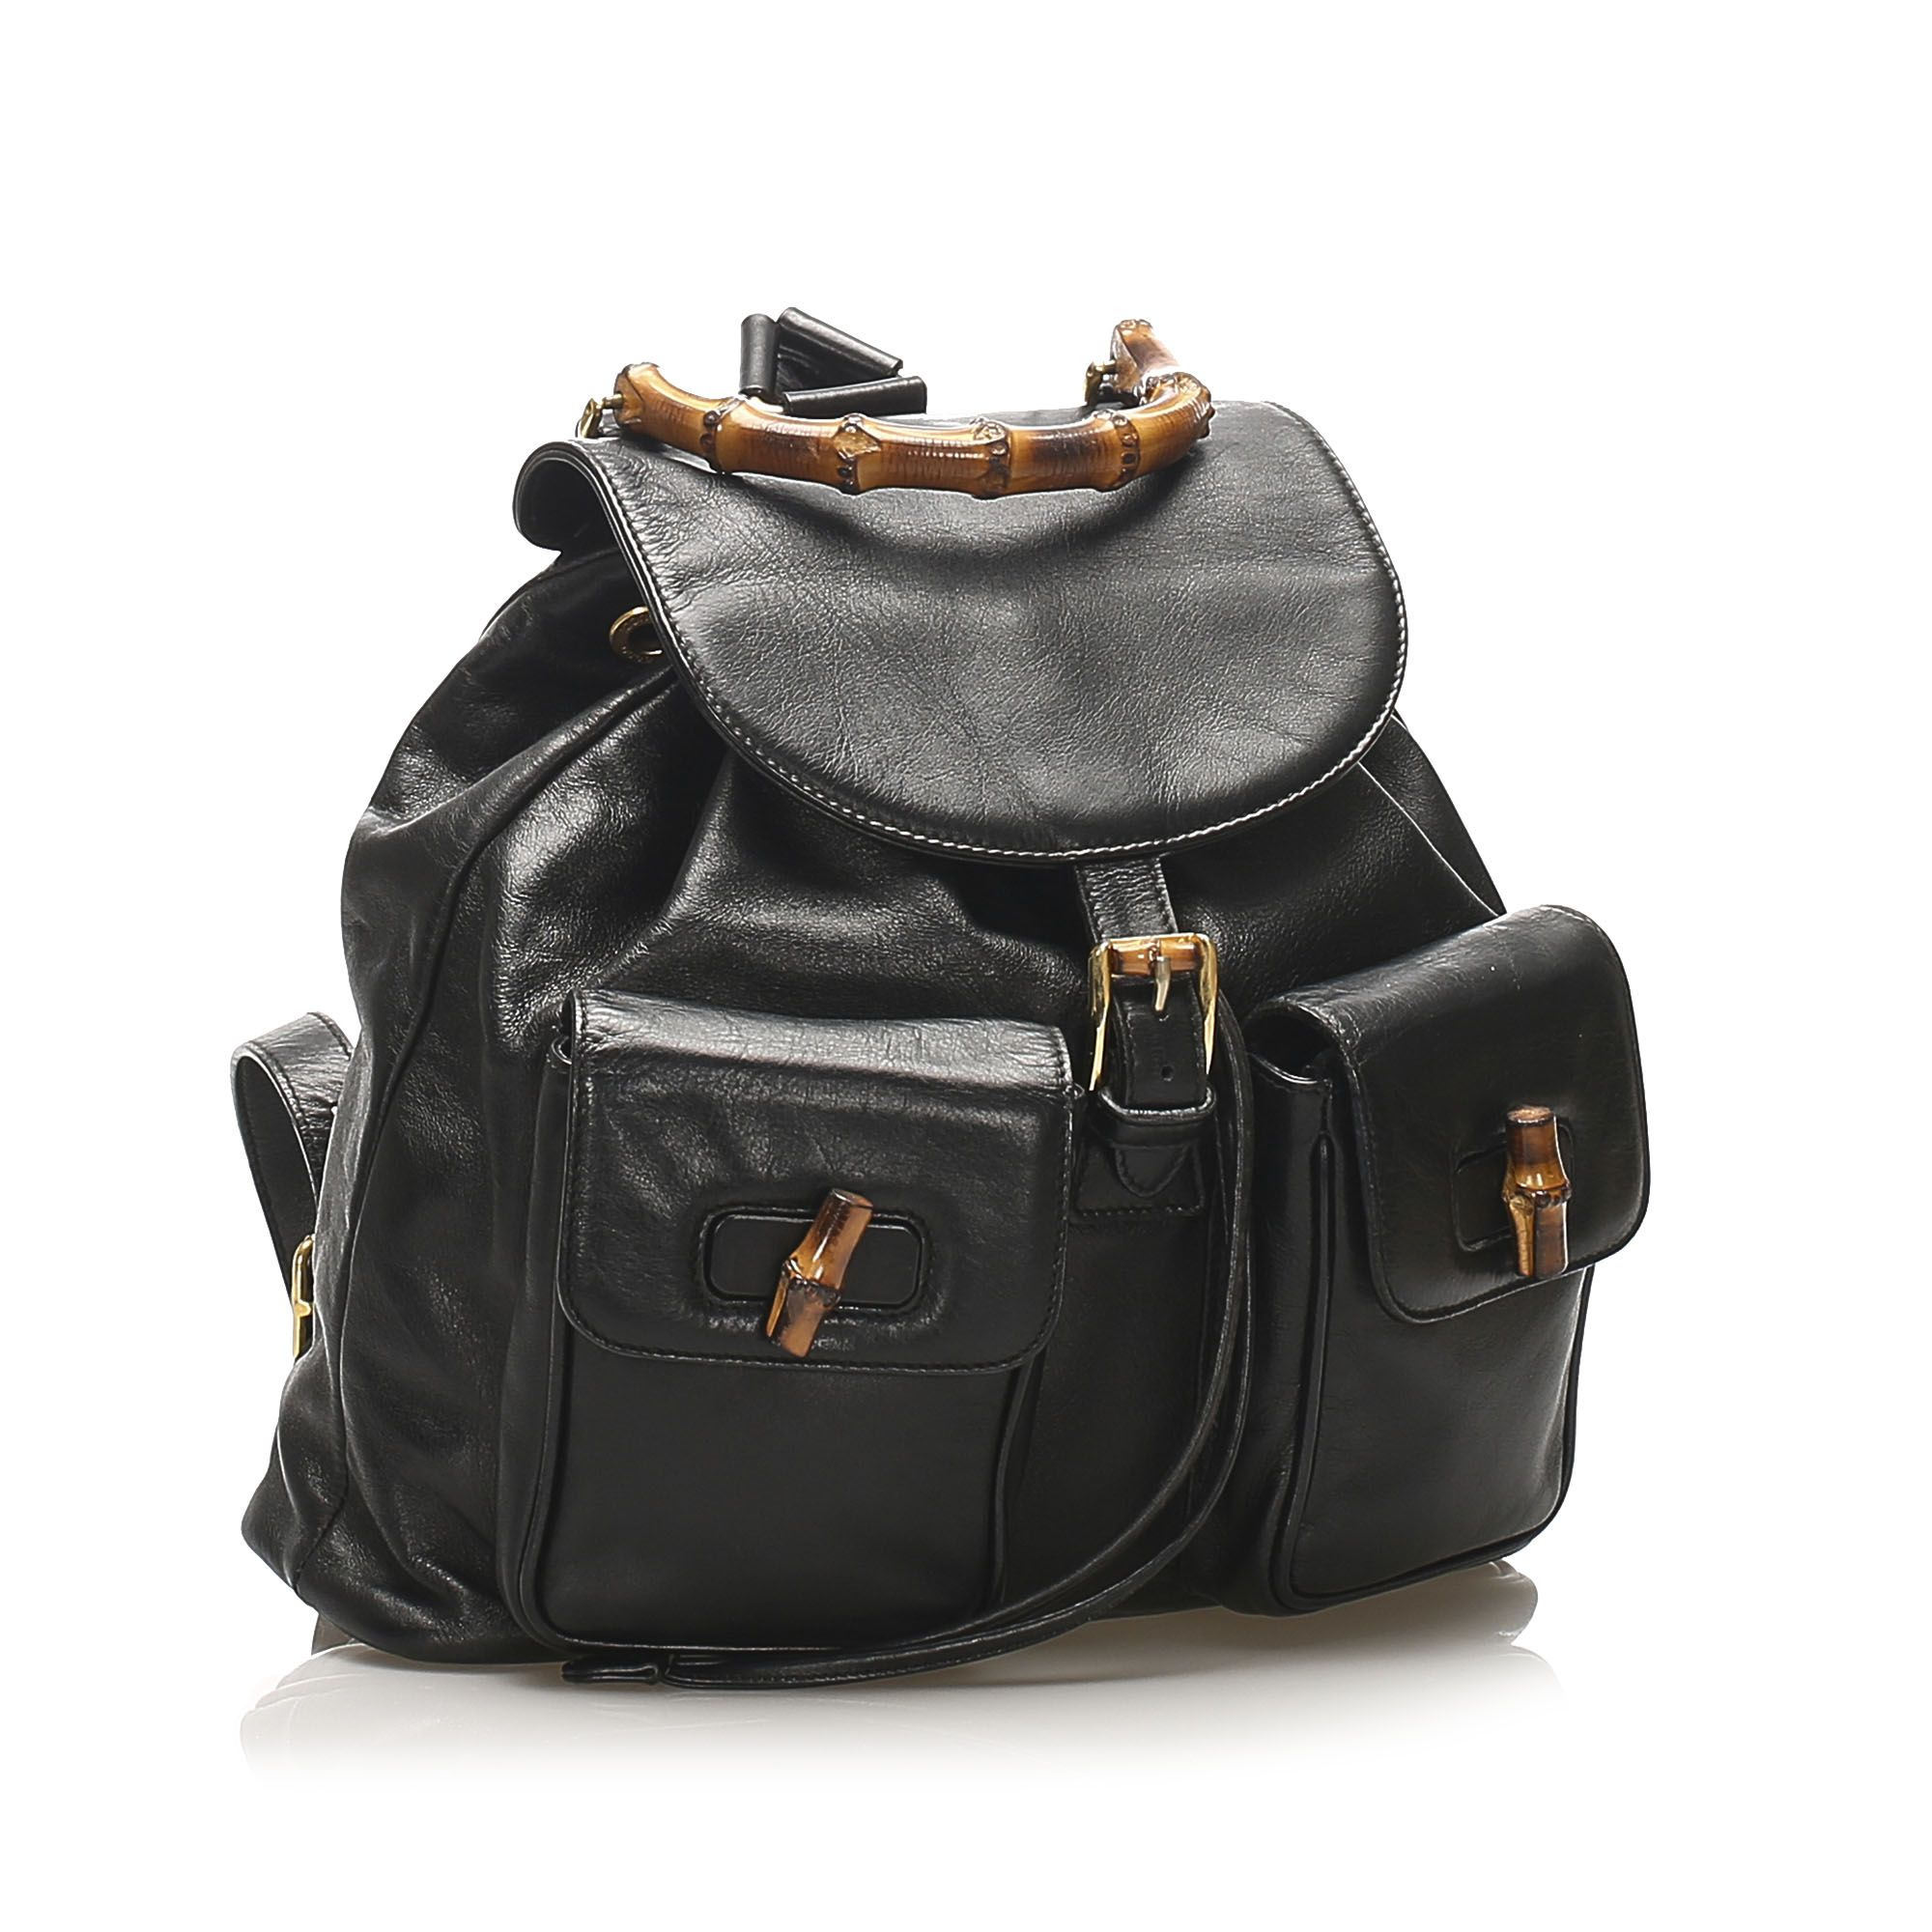 Vintage Gucci Bamboo Drawstring Leather Backpack Black